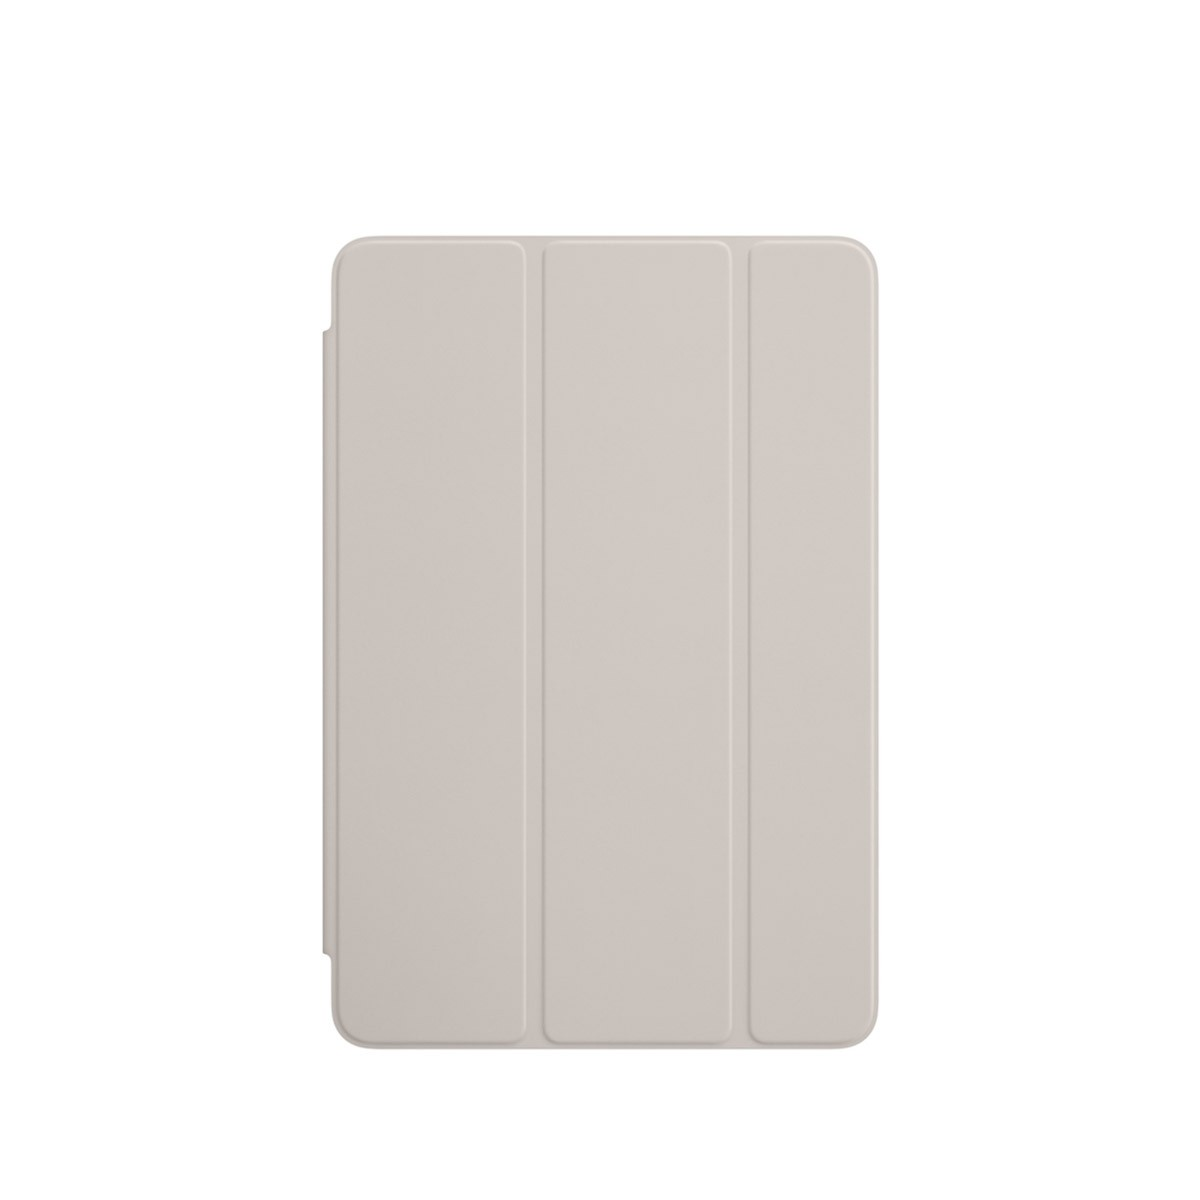 Apple iPad mini 4 Smart Cover – kamenně šedý mkm02zm/a